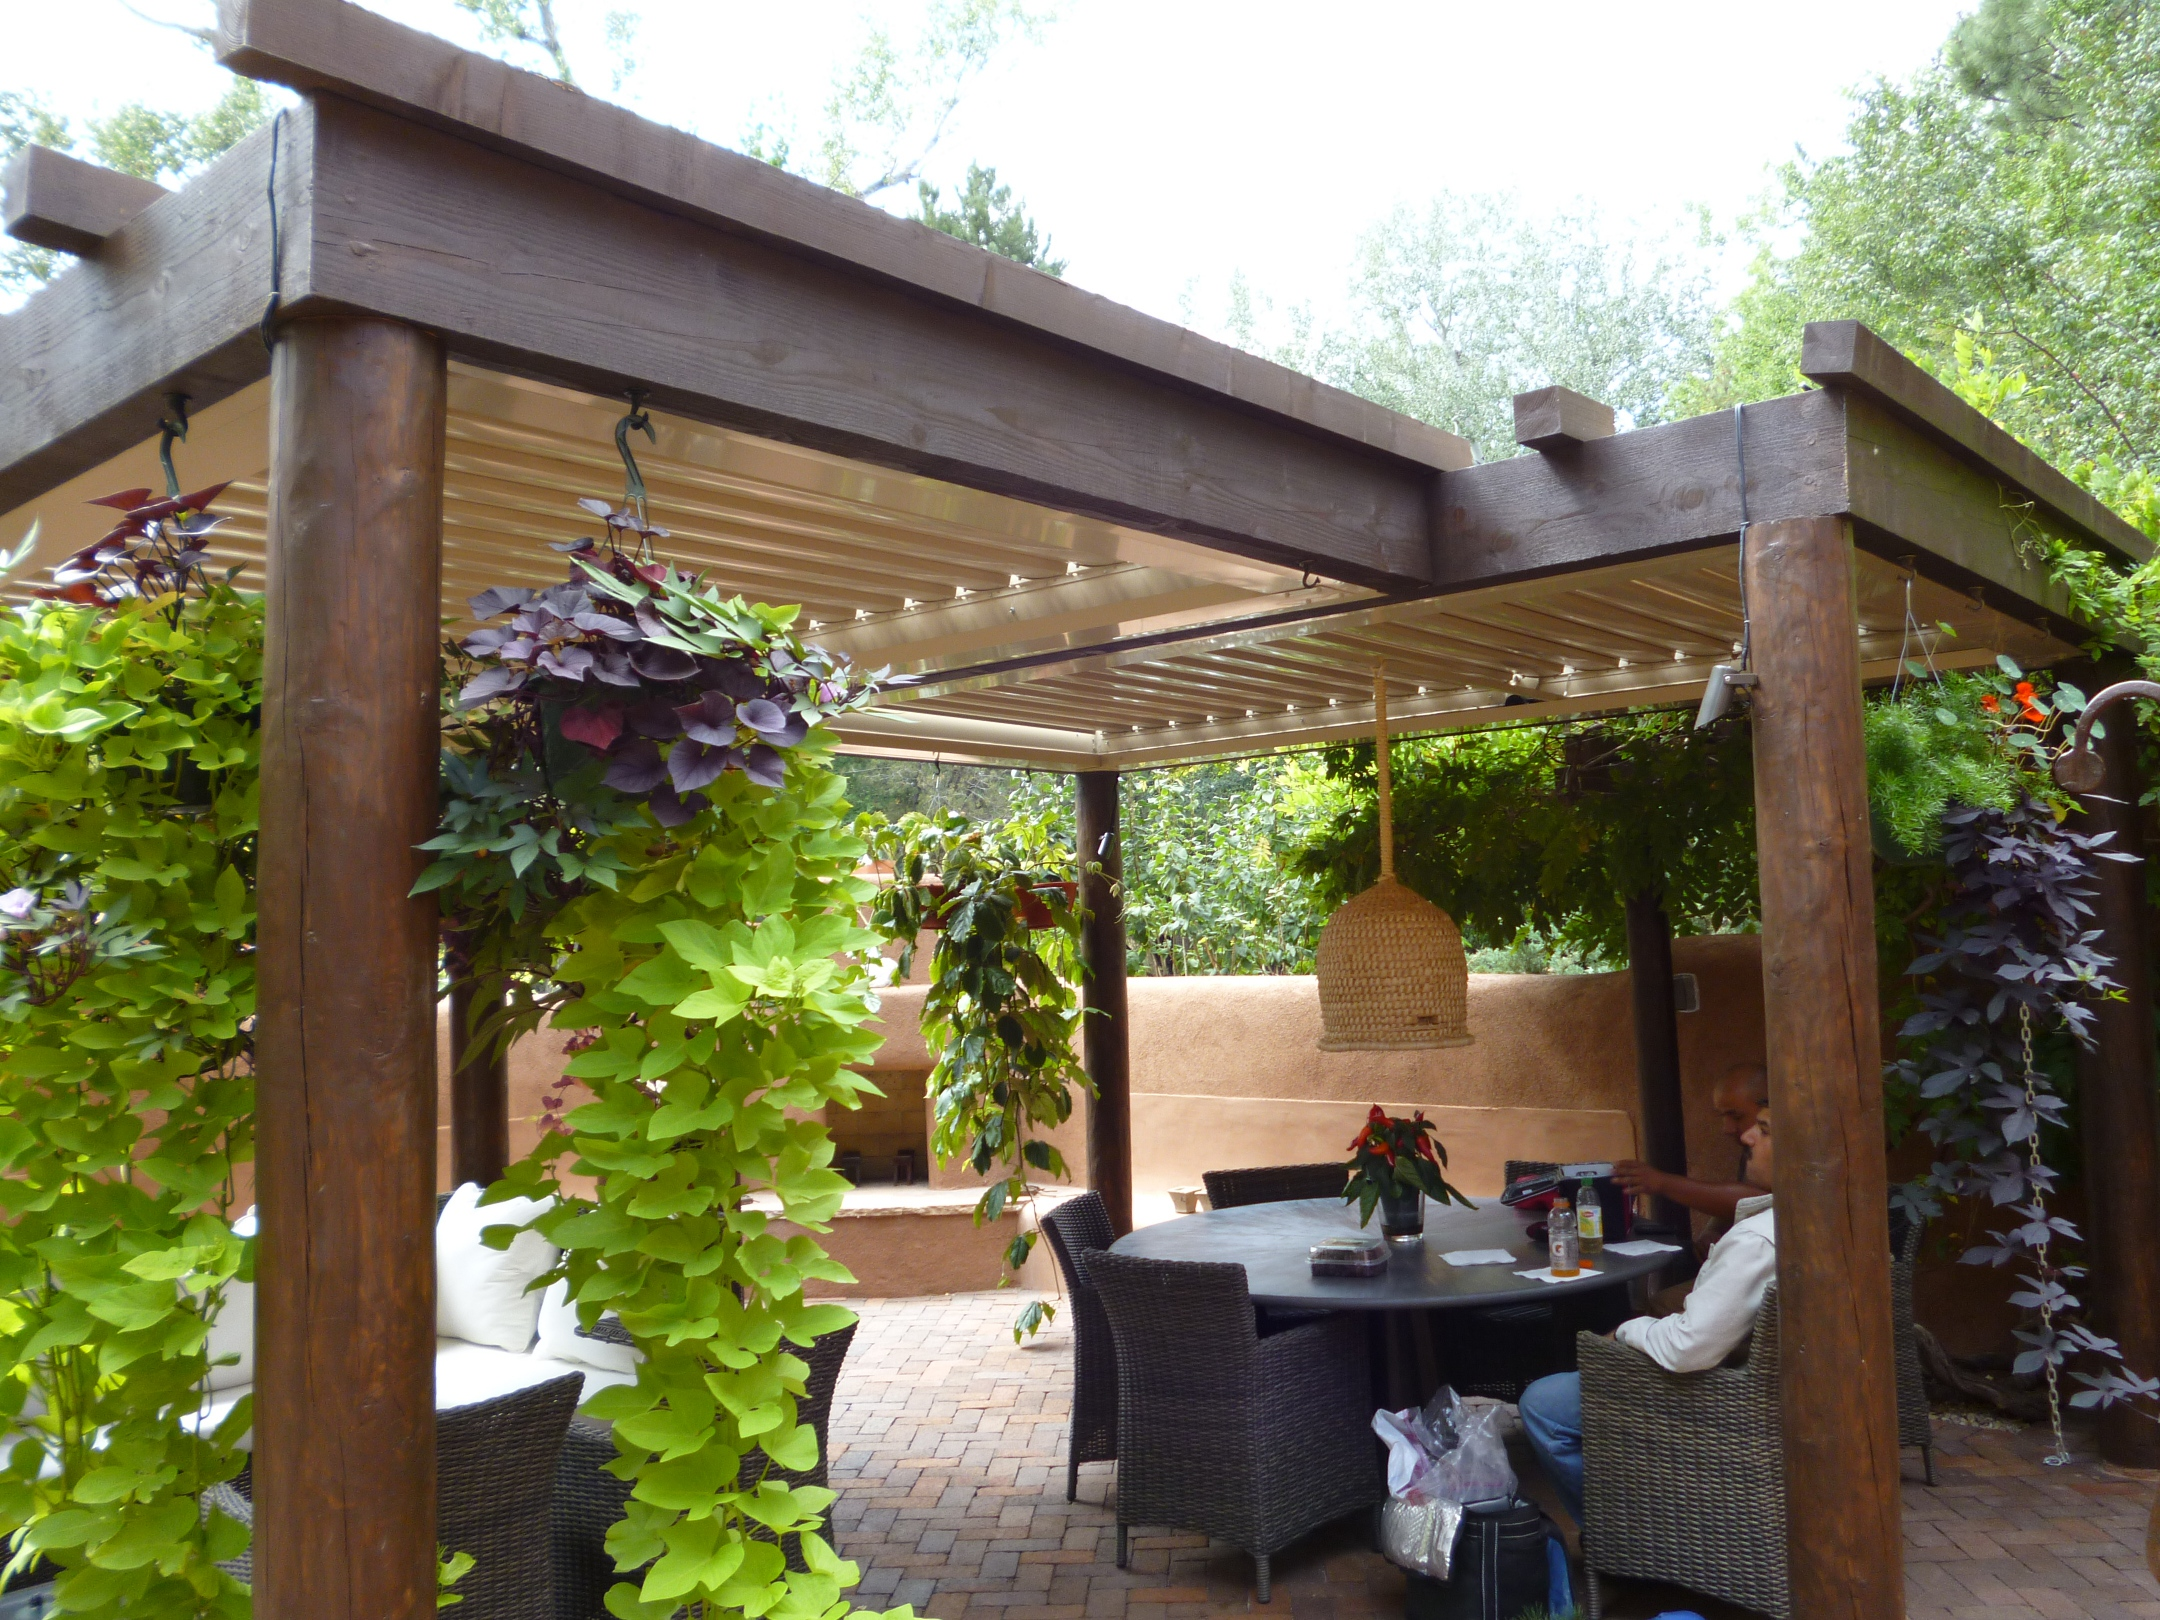 Natural Wooden Patio Covers - HomesFeed on Patio Covers Ideas  id=20738